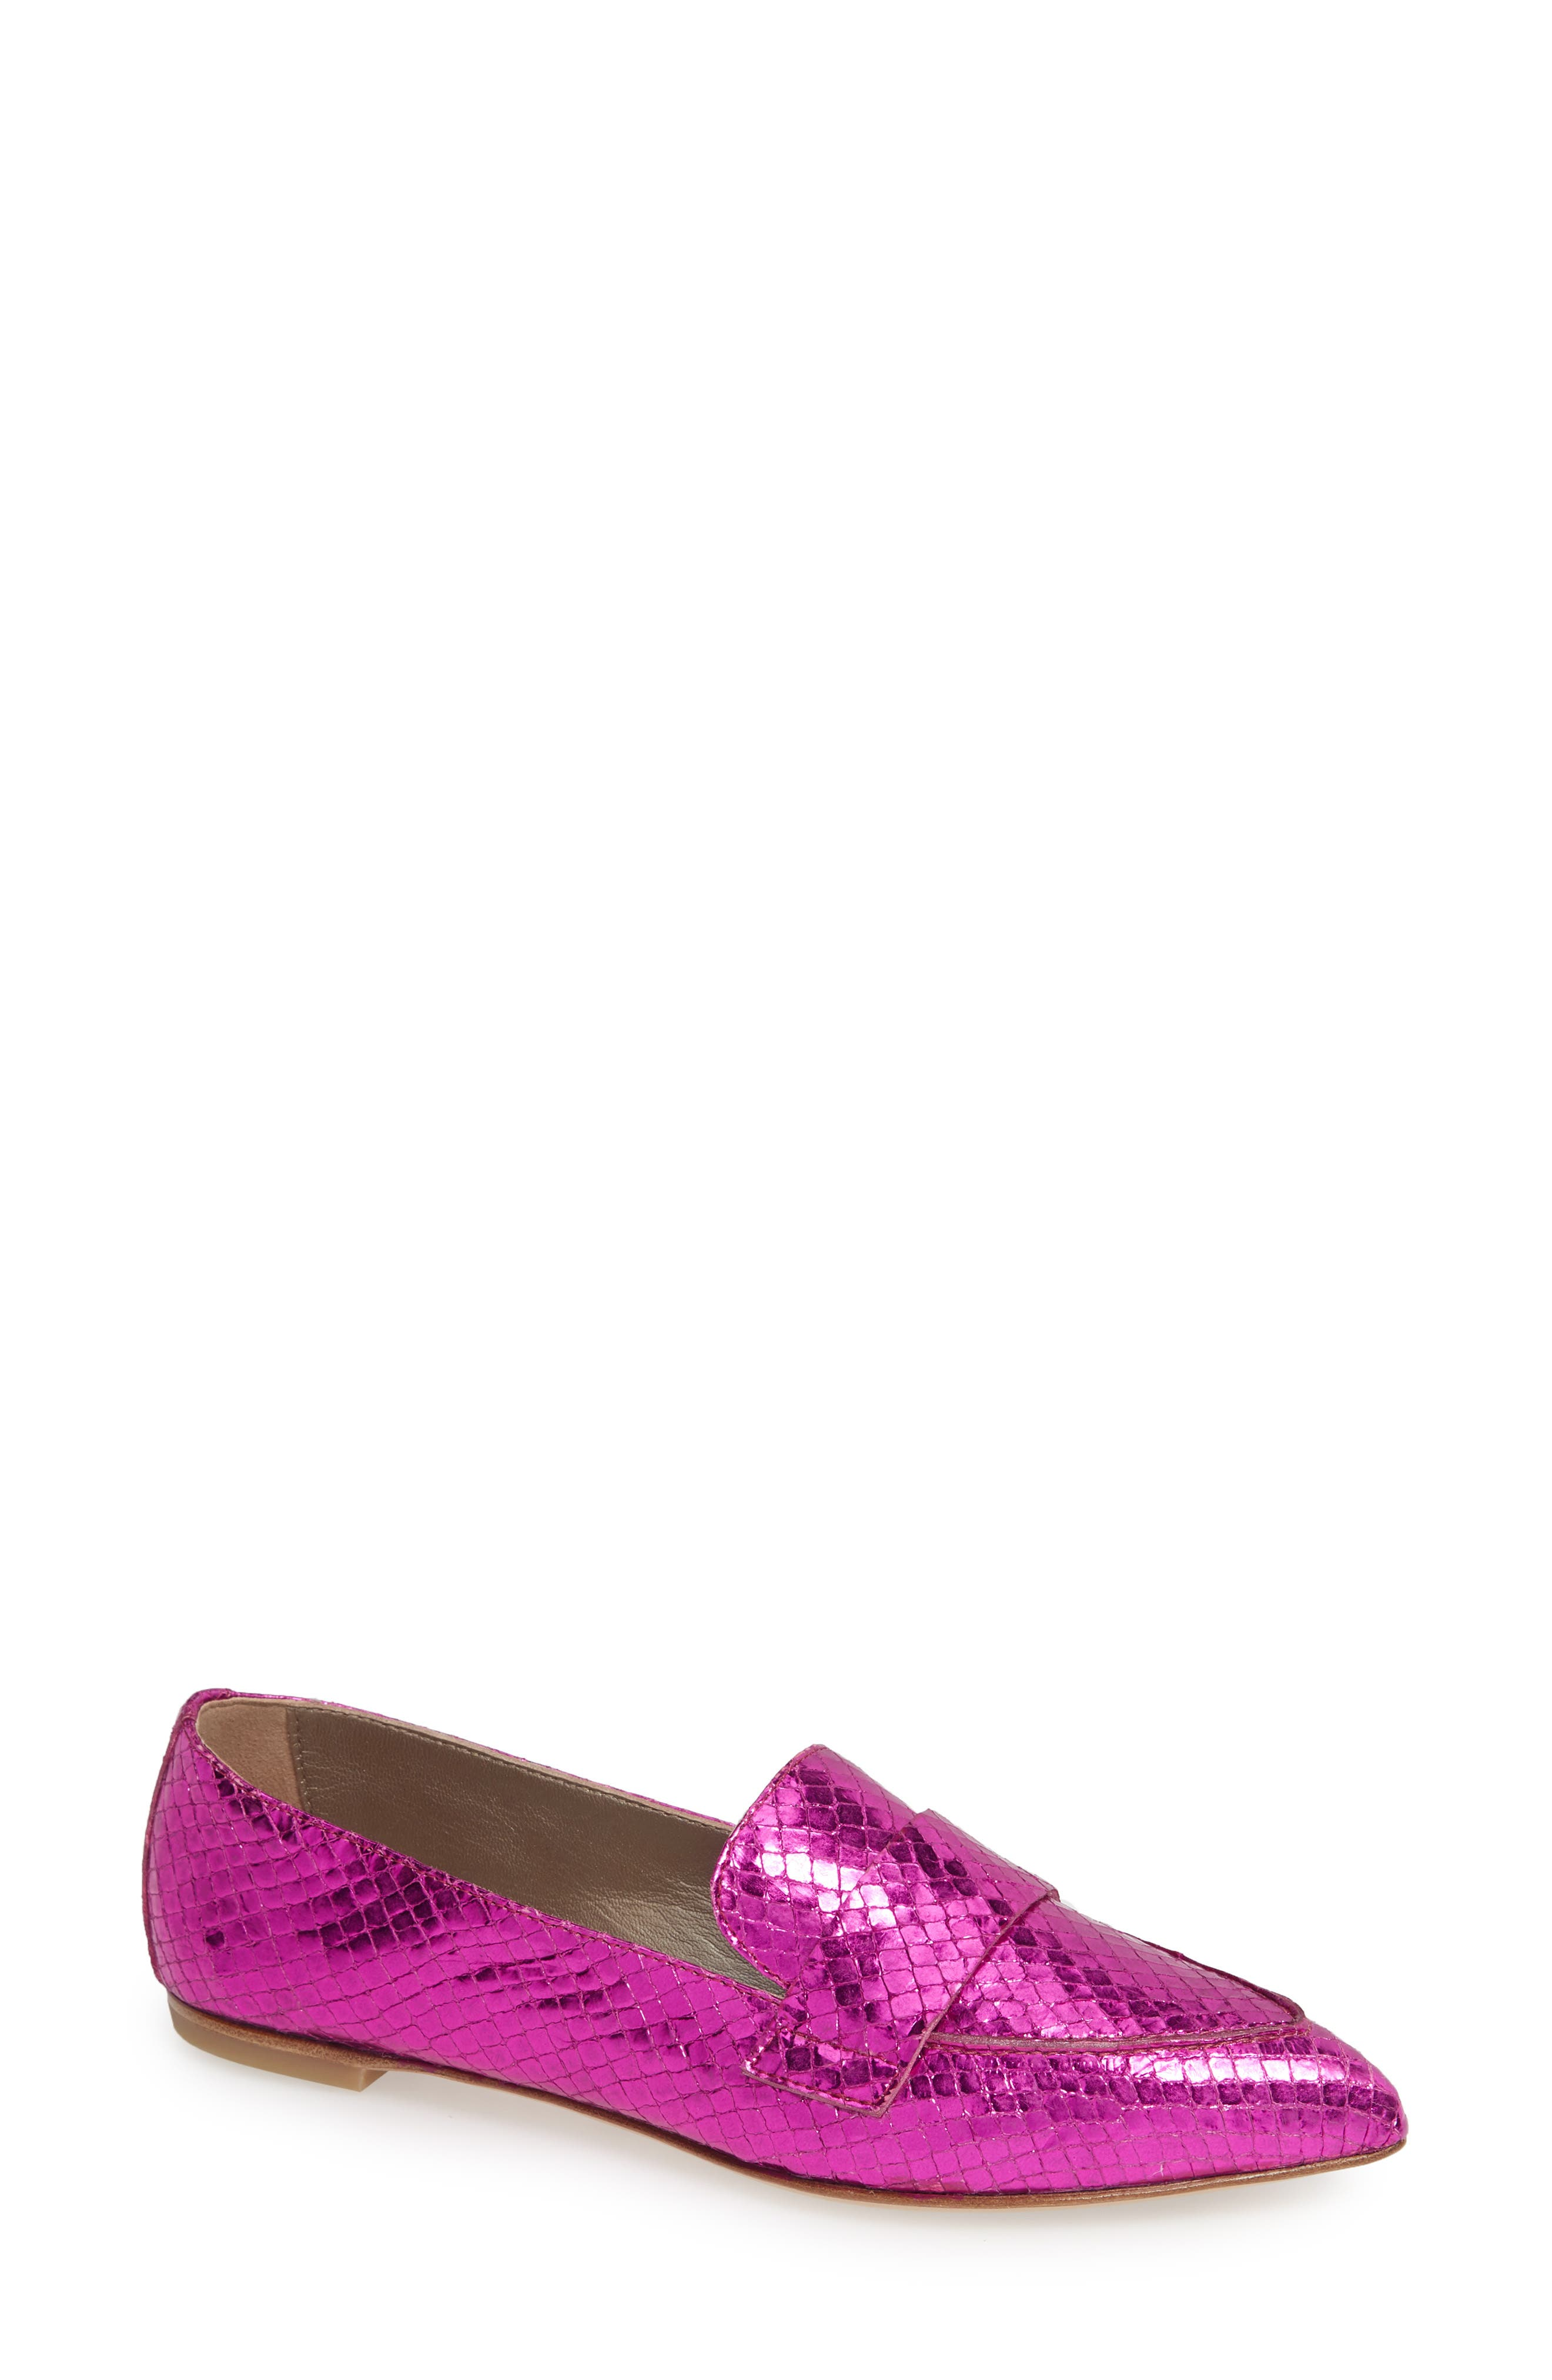 Agl Softy Pointy Toe Moccasin Loafer, Pink